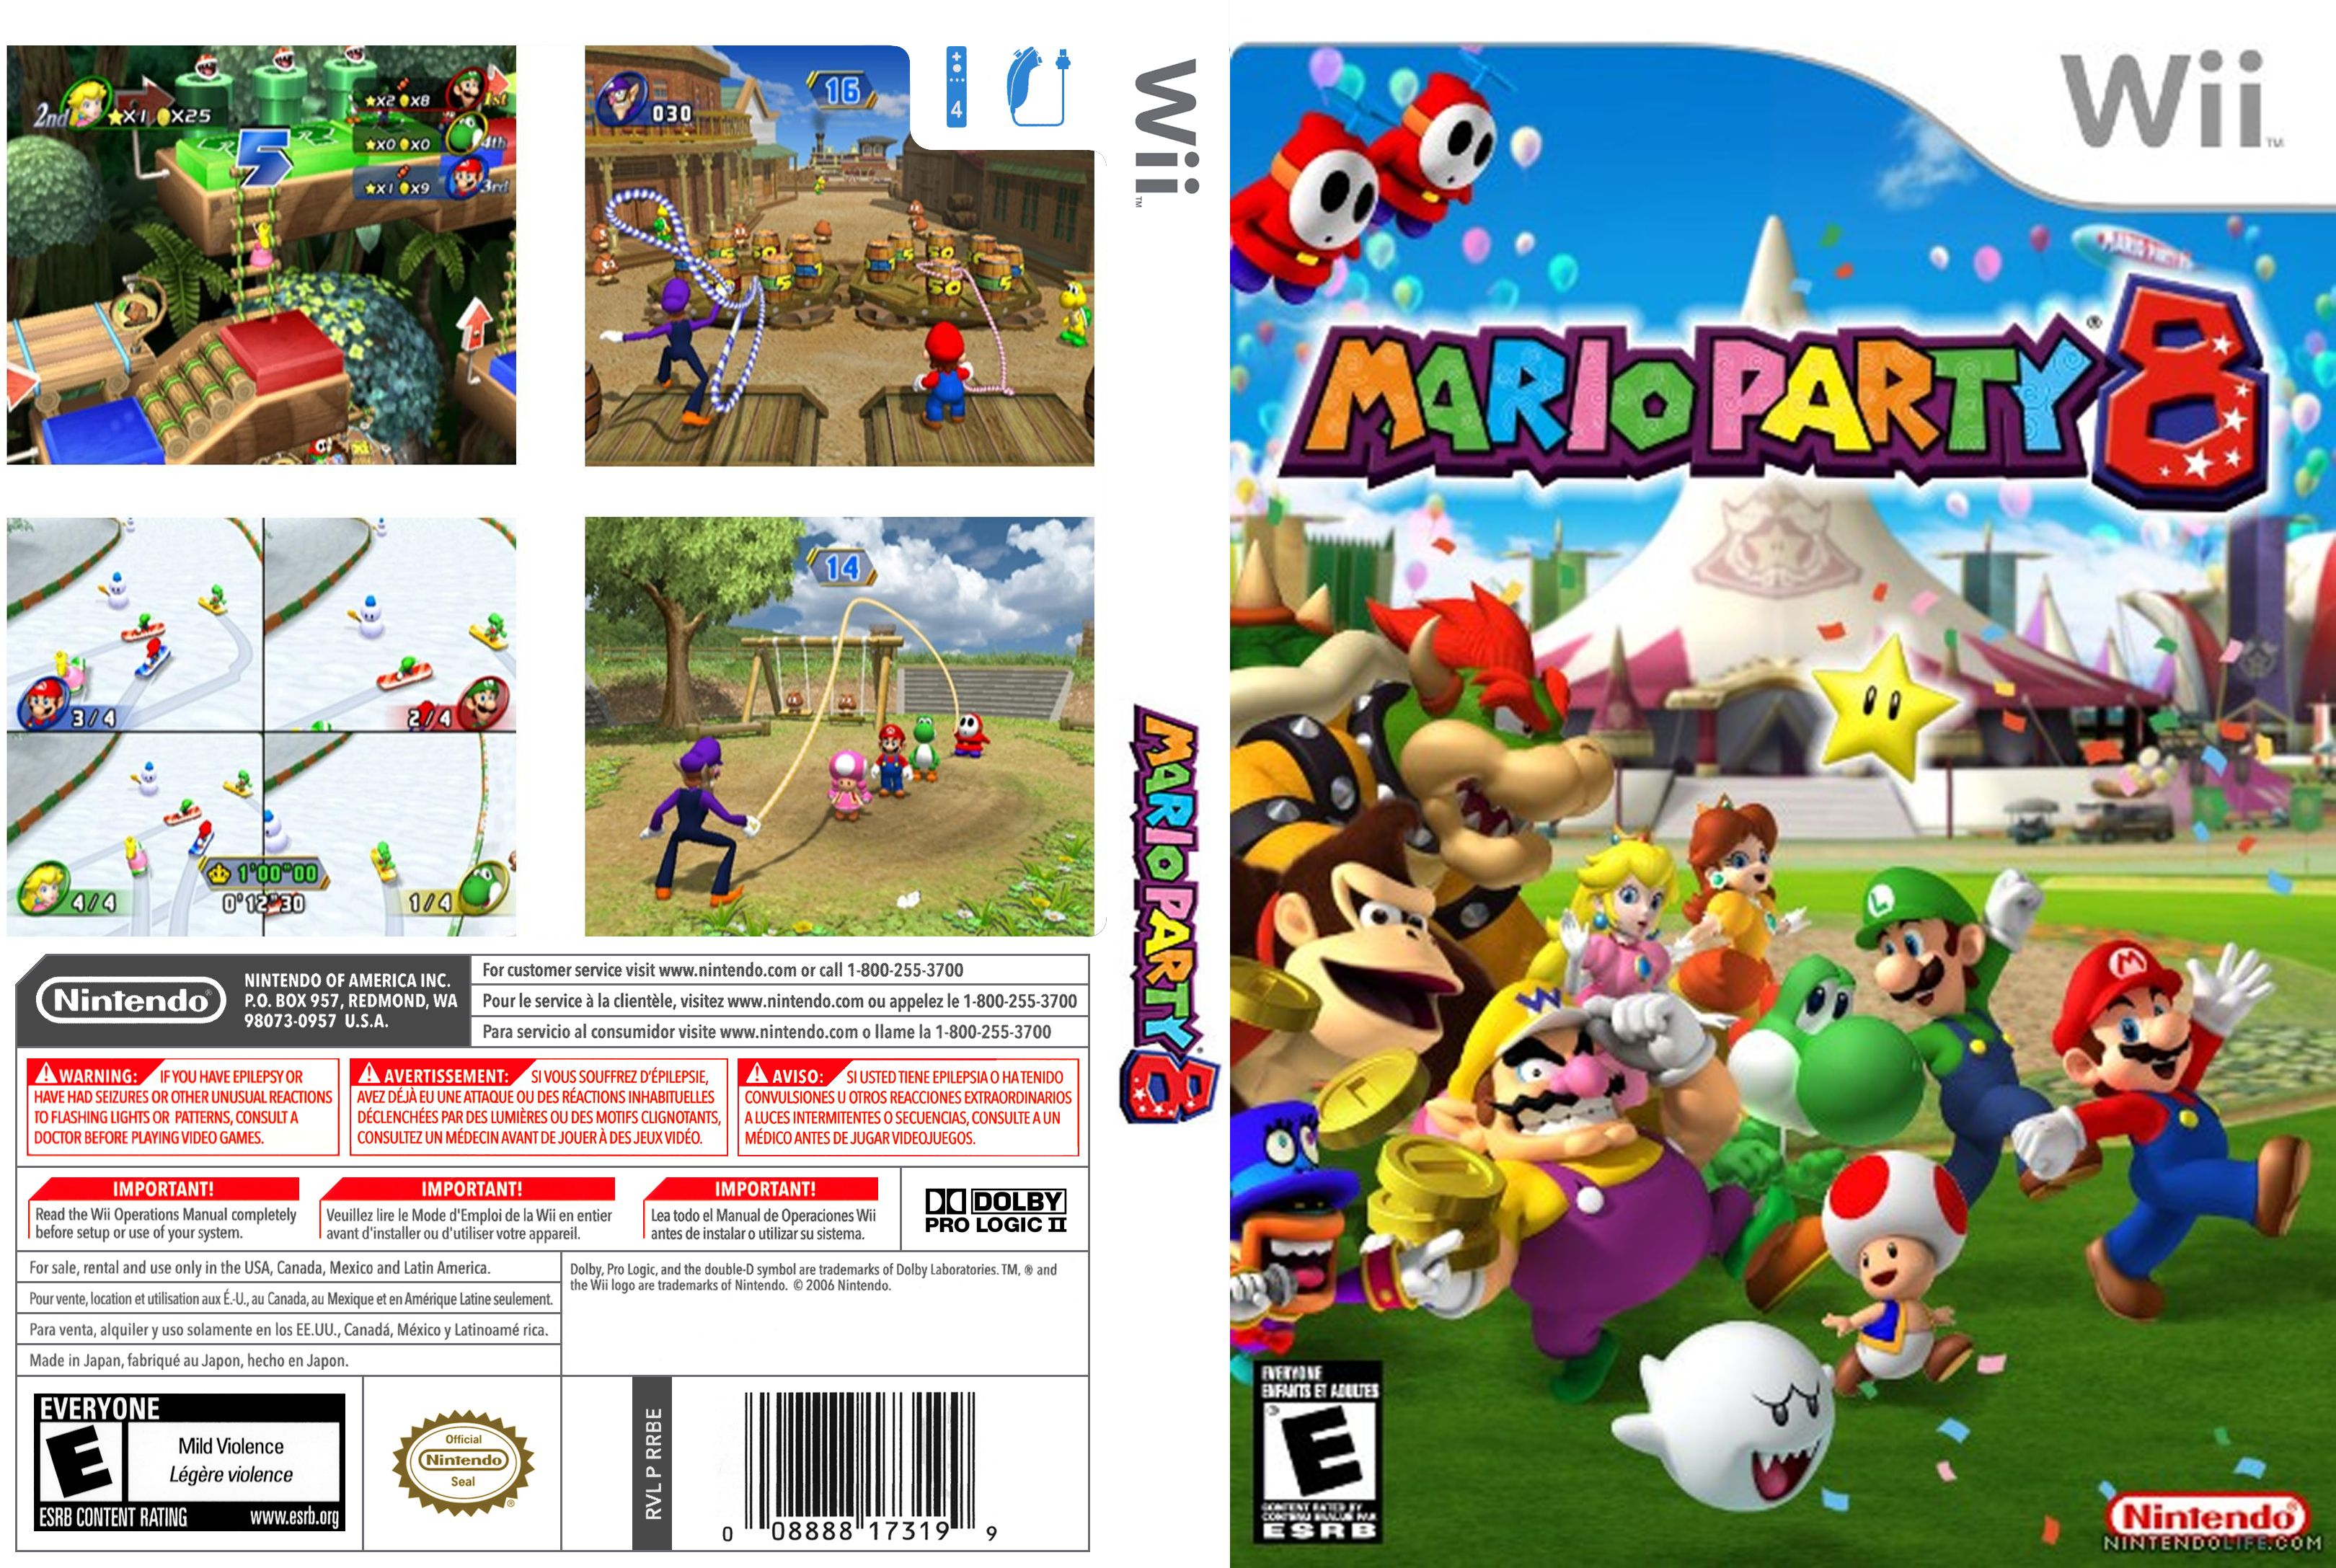 mario party 8 ntsc wii full wii covers cover century over album art covers for free. Black Bedroom Furniture Sets. Home Design Ideas